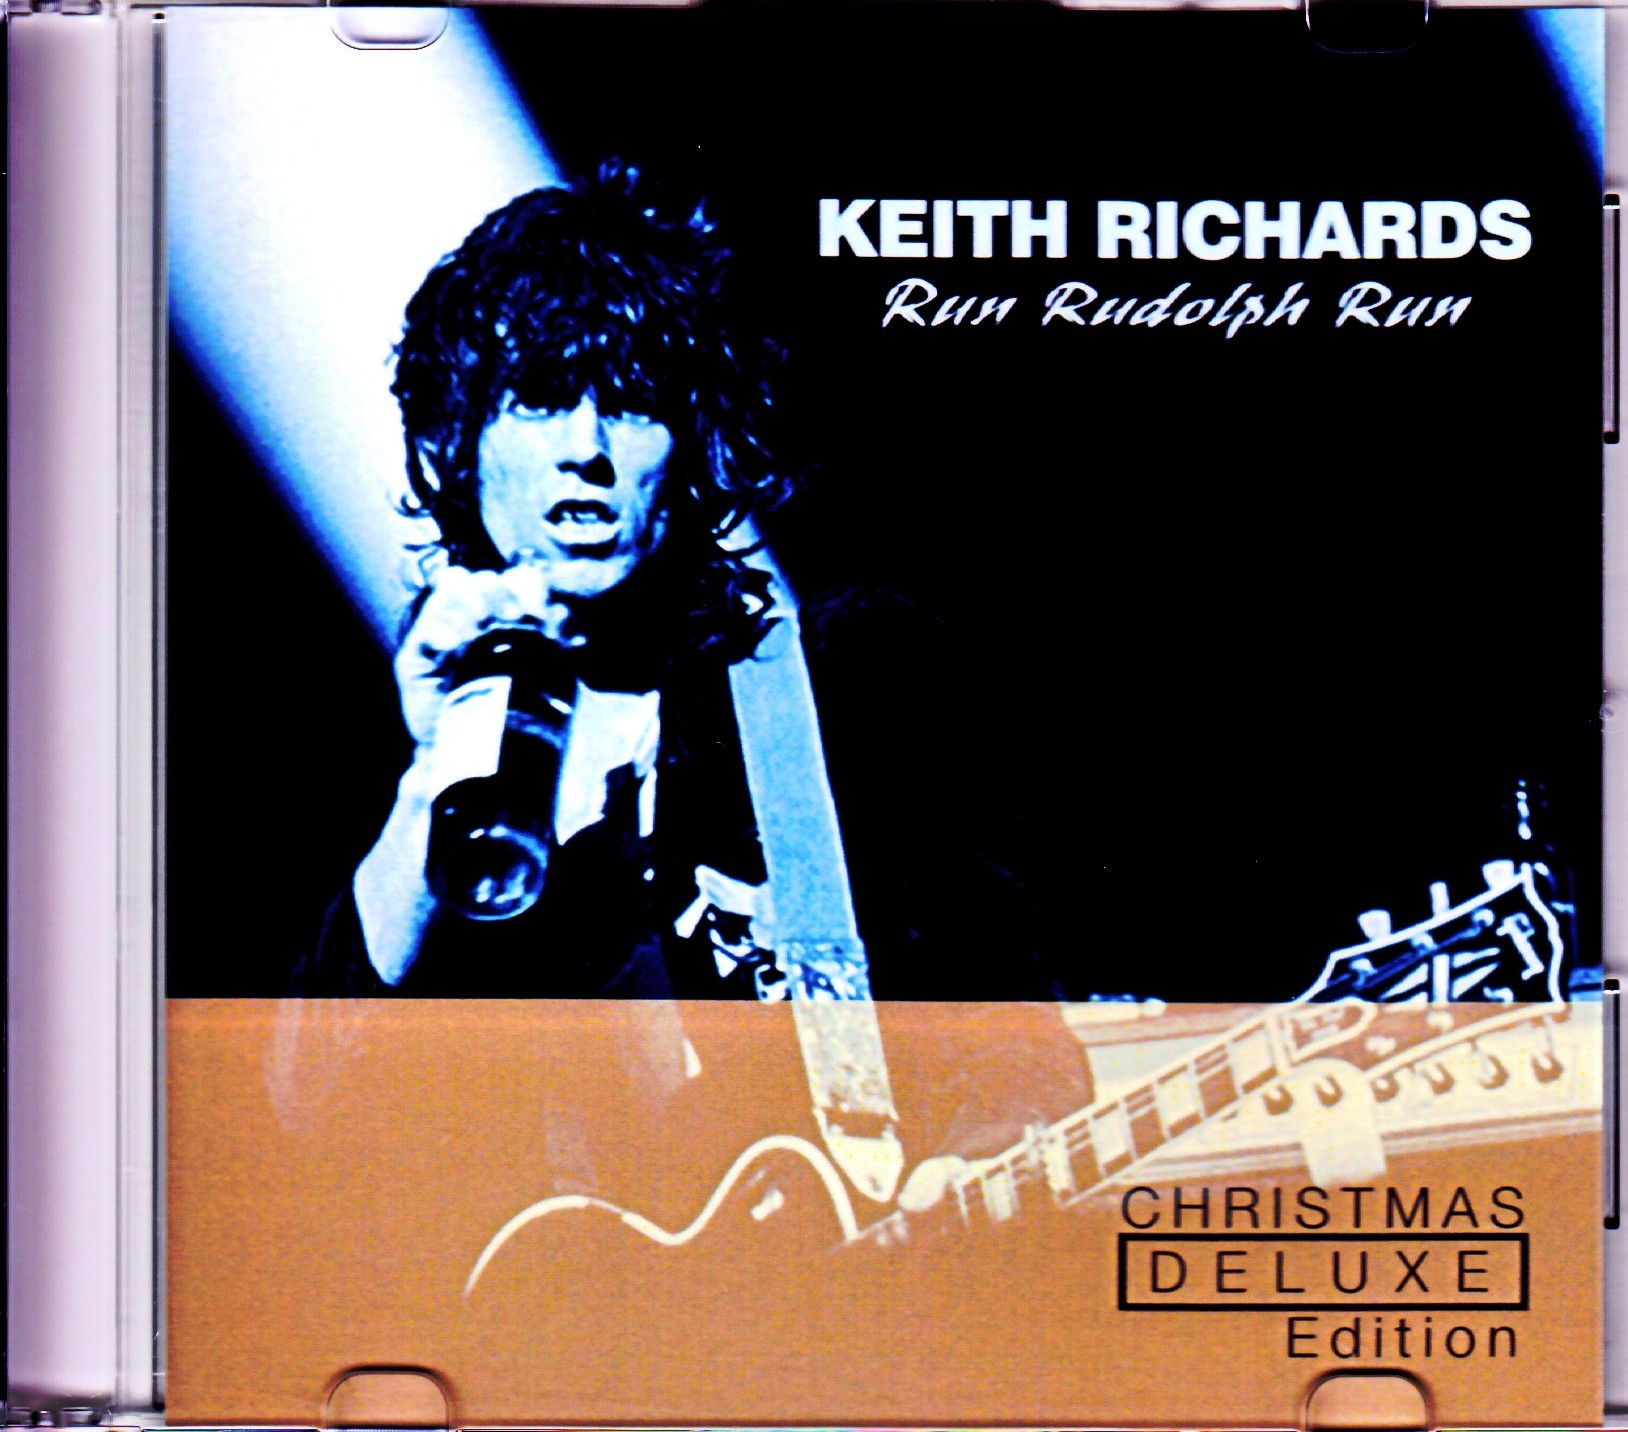 "Keith Richards キース・リチャード/Rare 1978 US Promotional Only 2 Track 7"" Vinyl Single"